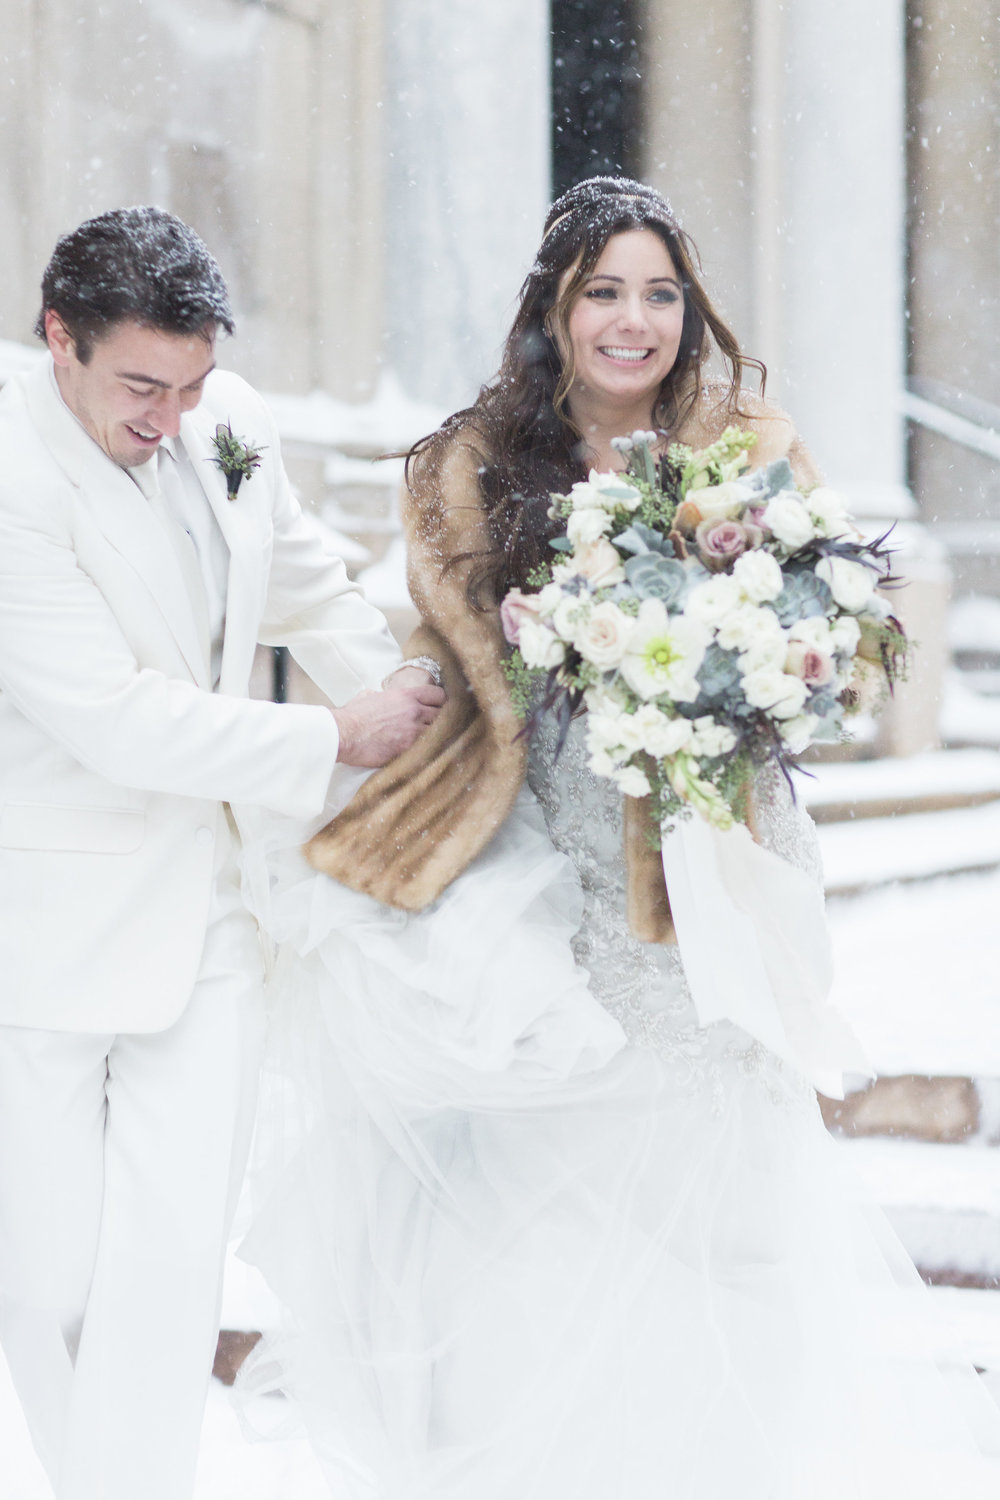 The bride wished for a winter wonderland on her wedding day, and Mother Nature kindly obliged.